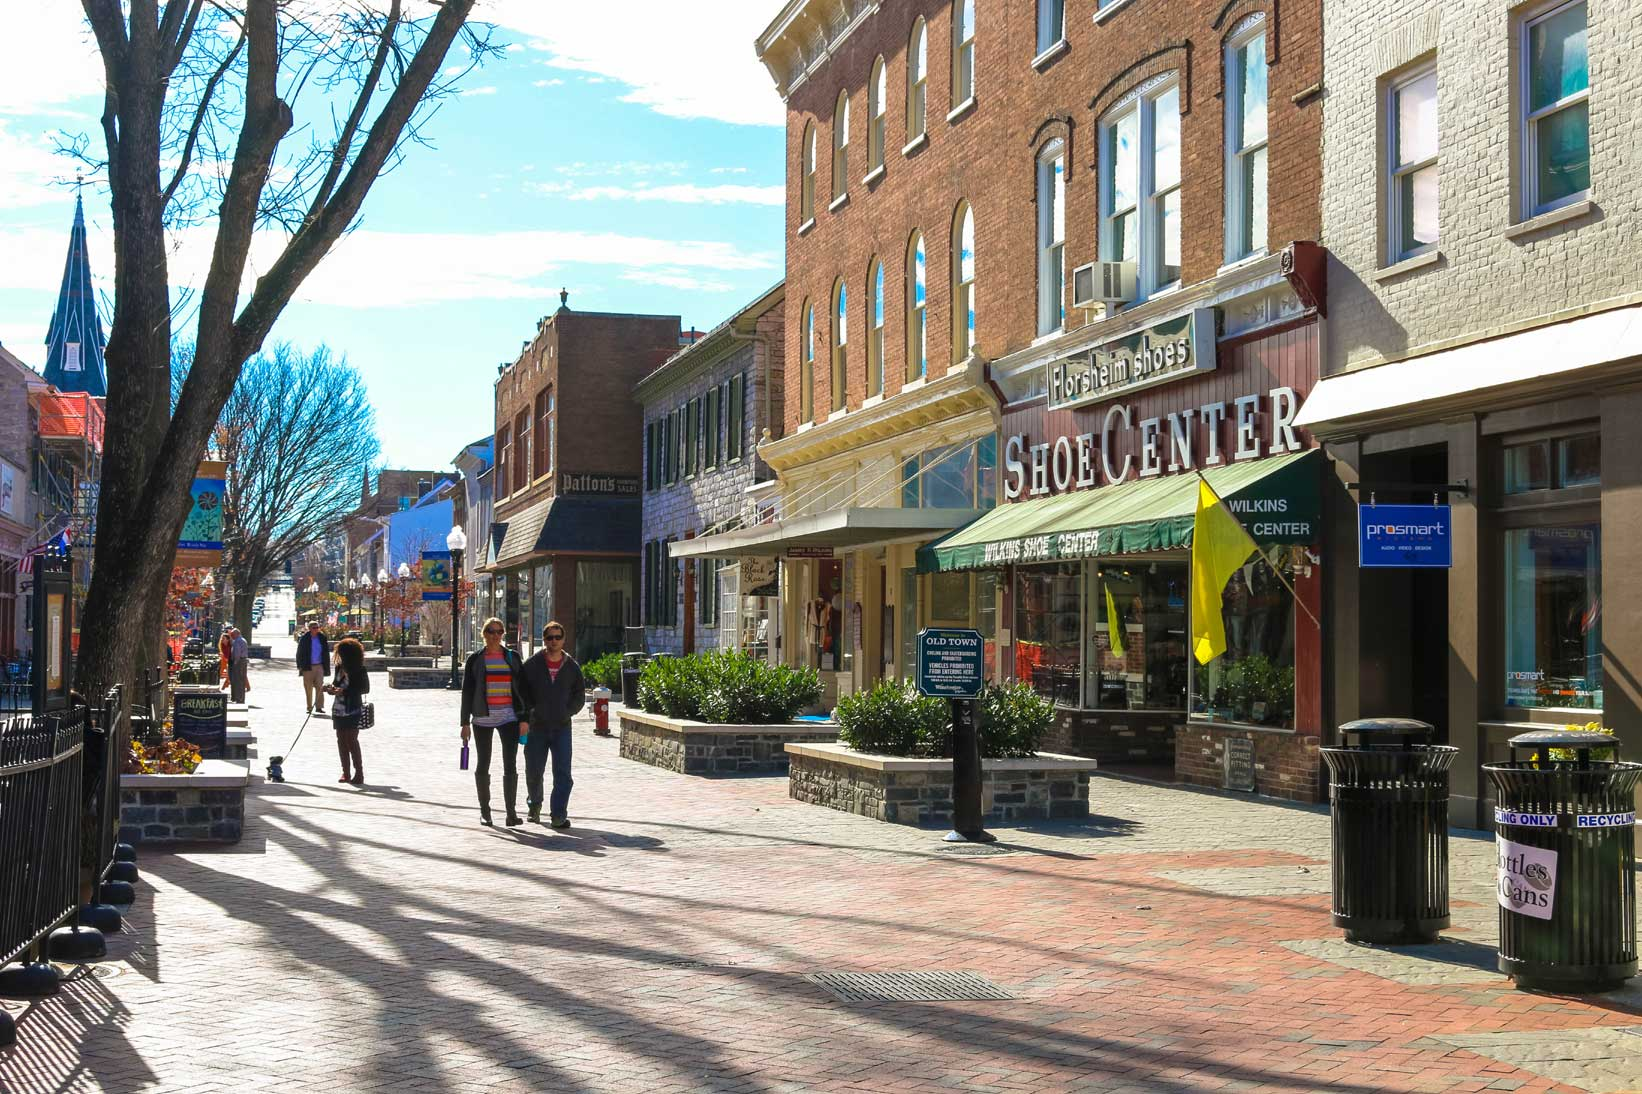 People walking on Pedestrian mall in Winchester, VA